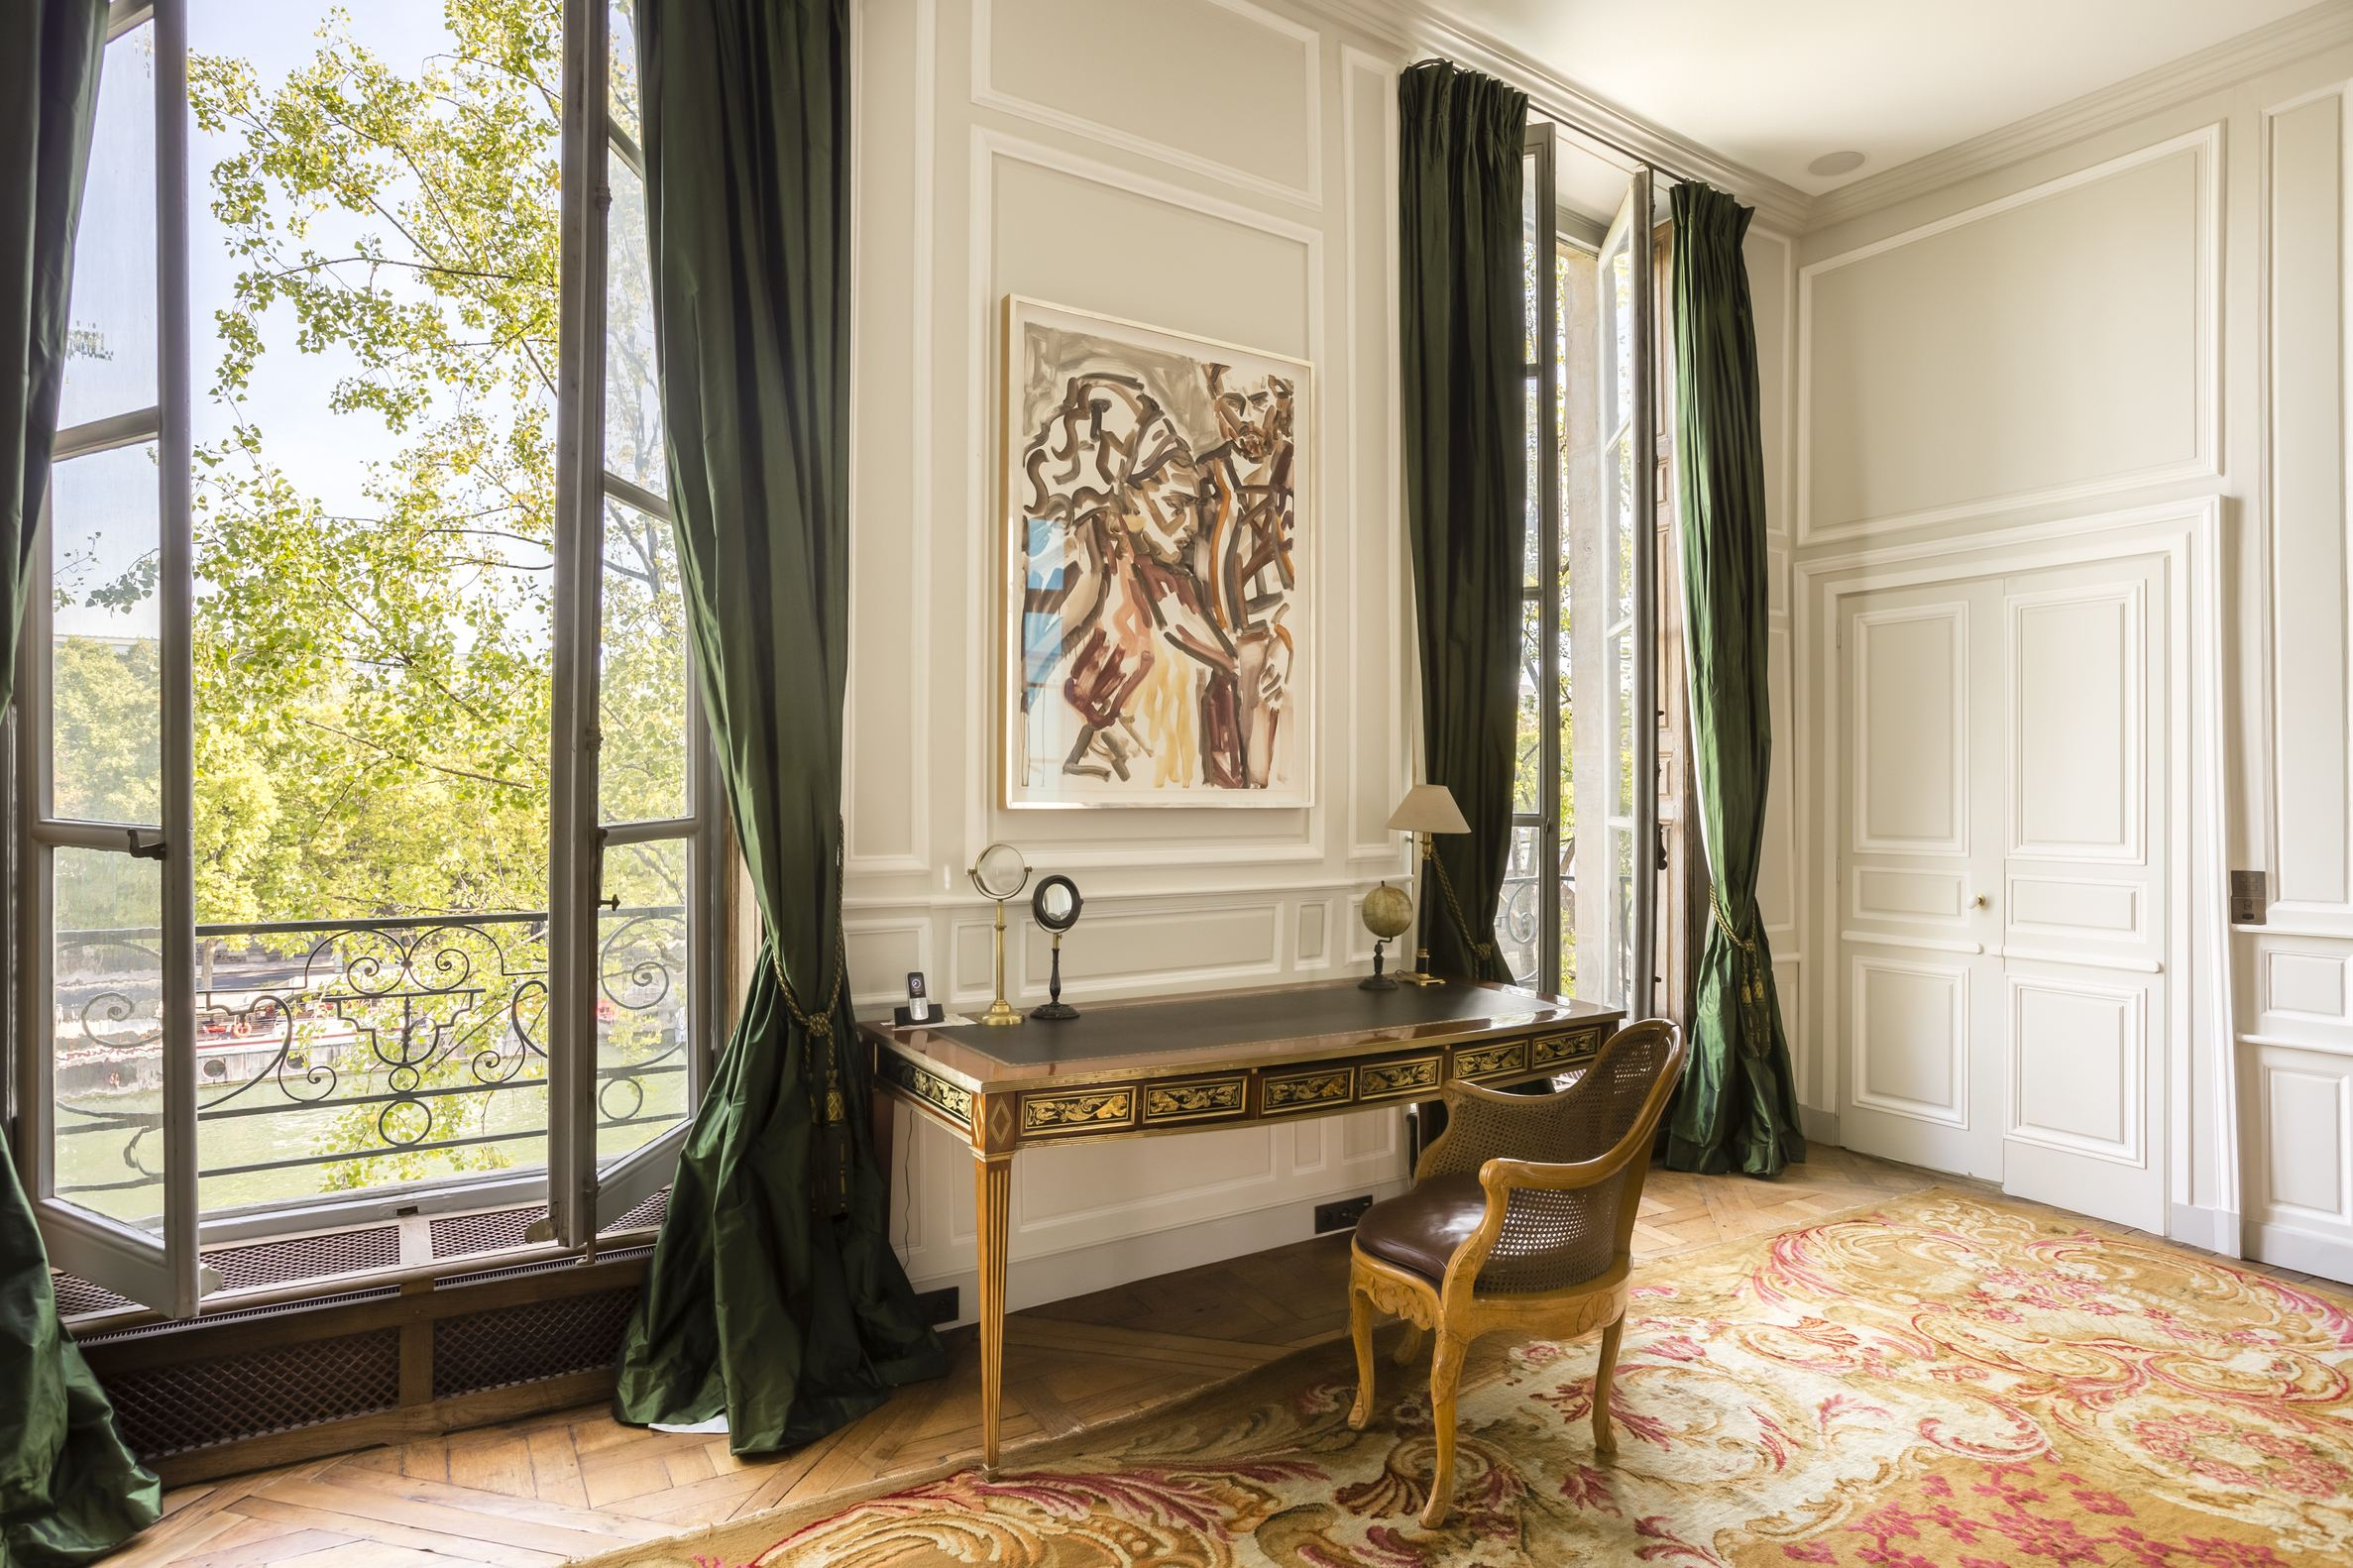 Property For Sale at 75004 - Elegant apartment on Ile Saint-Louis